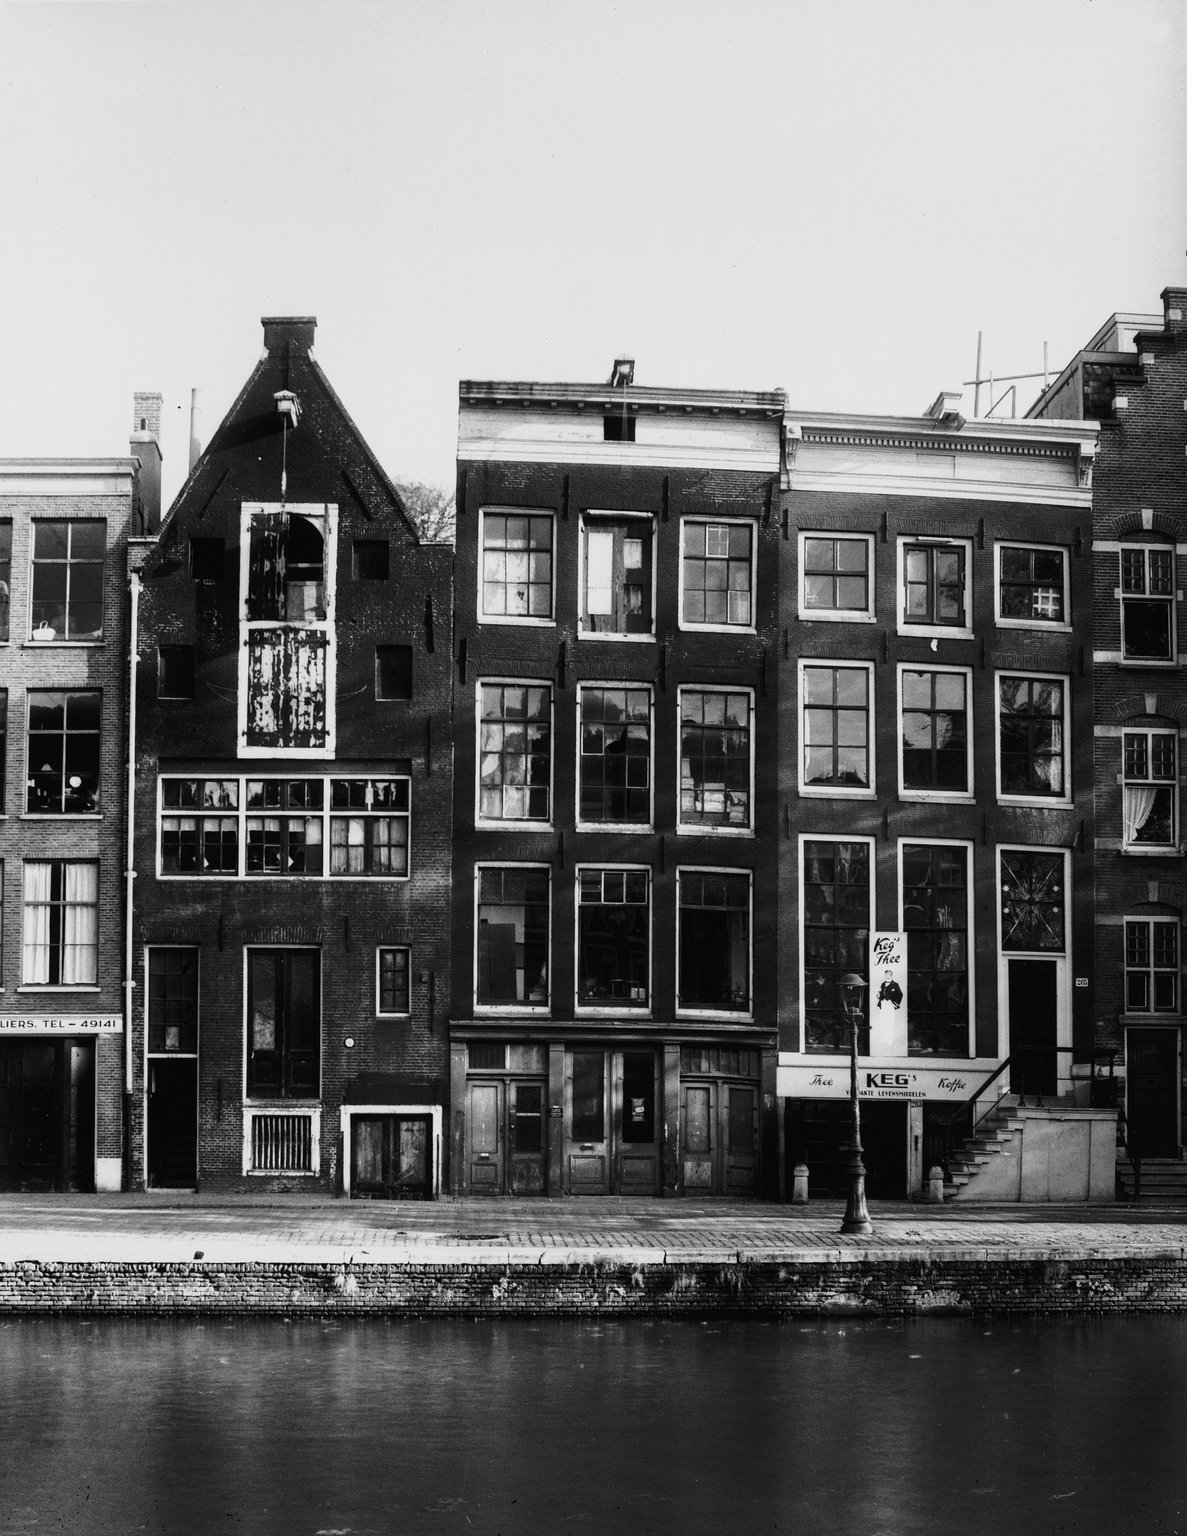 Otto Frank's business premises, Prinsengracht 263 (in the middle), around 1947.